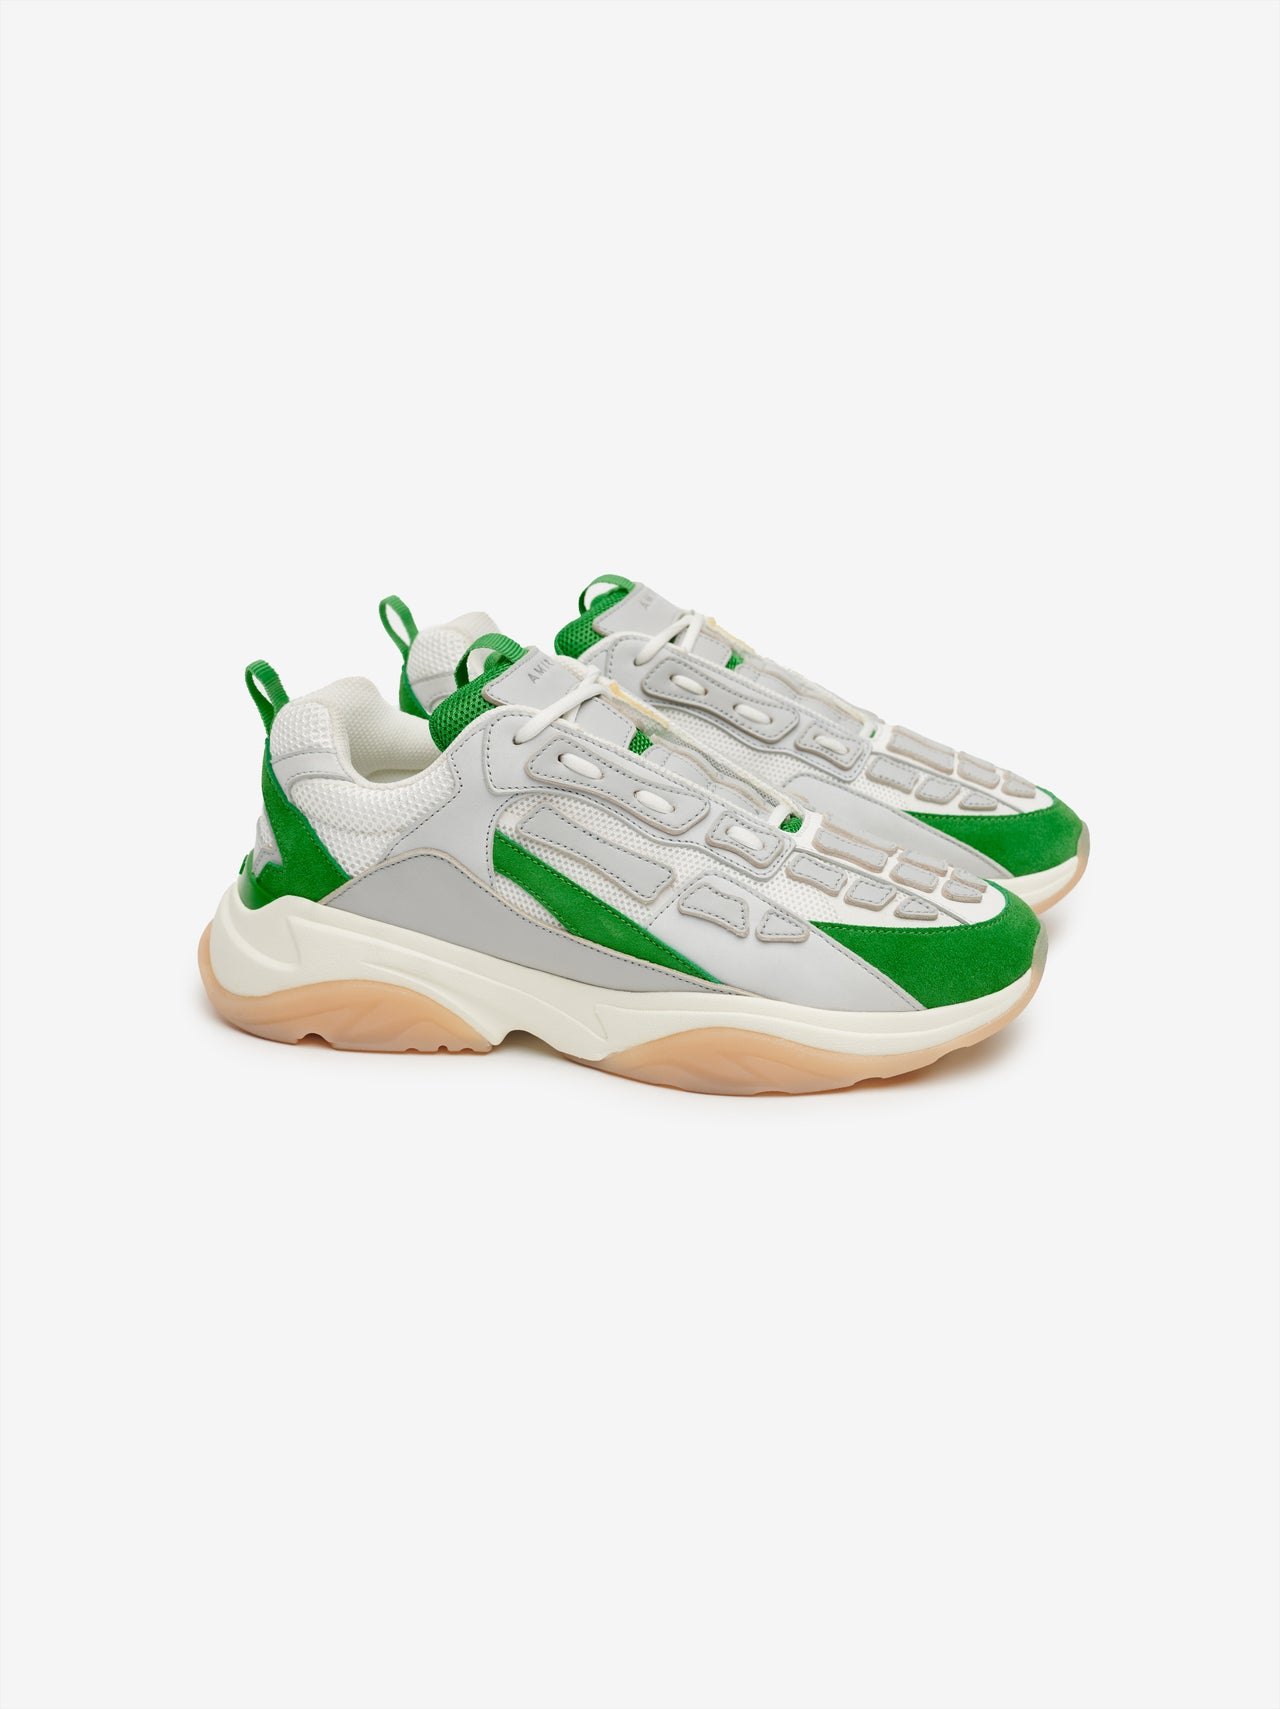 BONE RUNNER - TENNIS GREEN